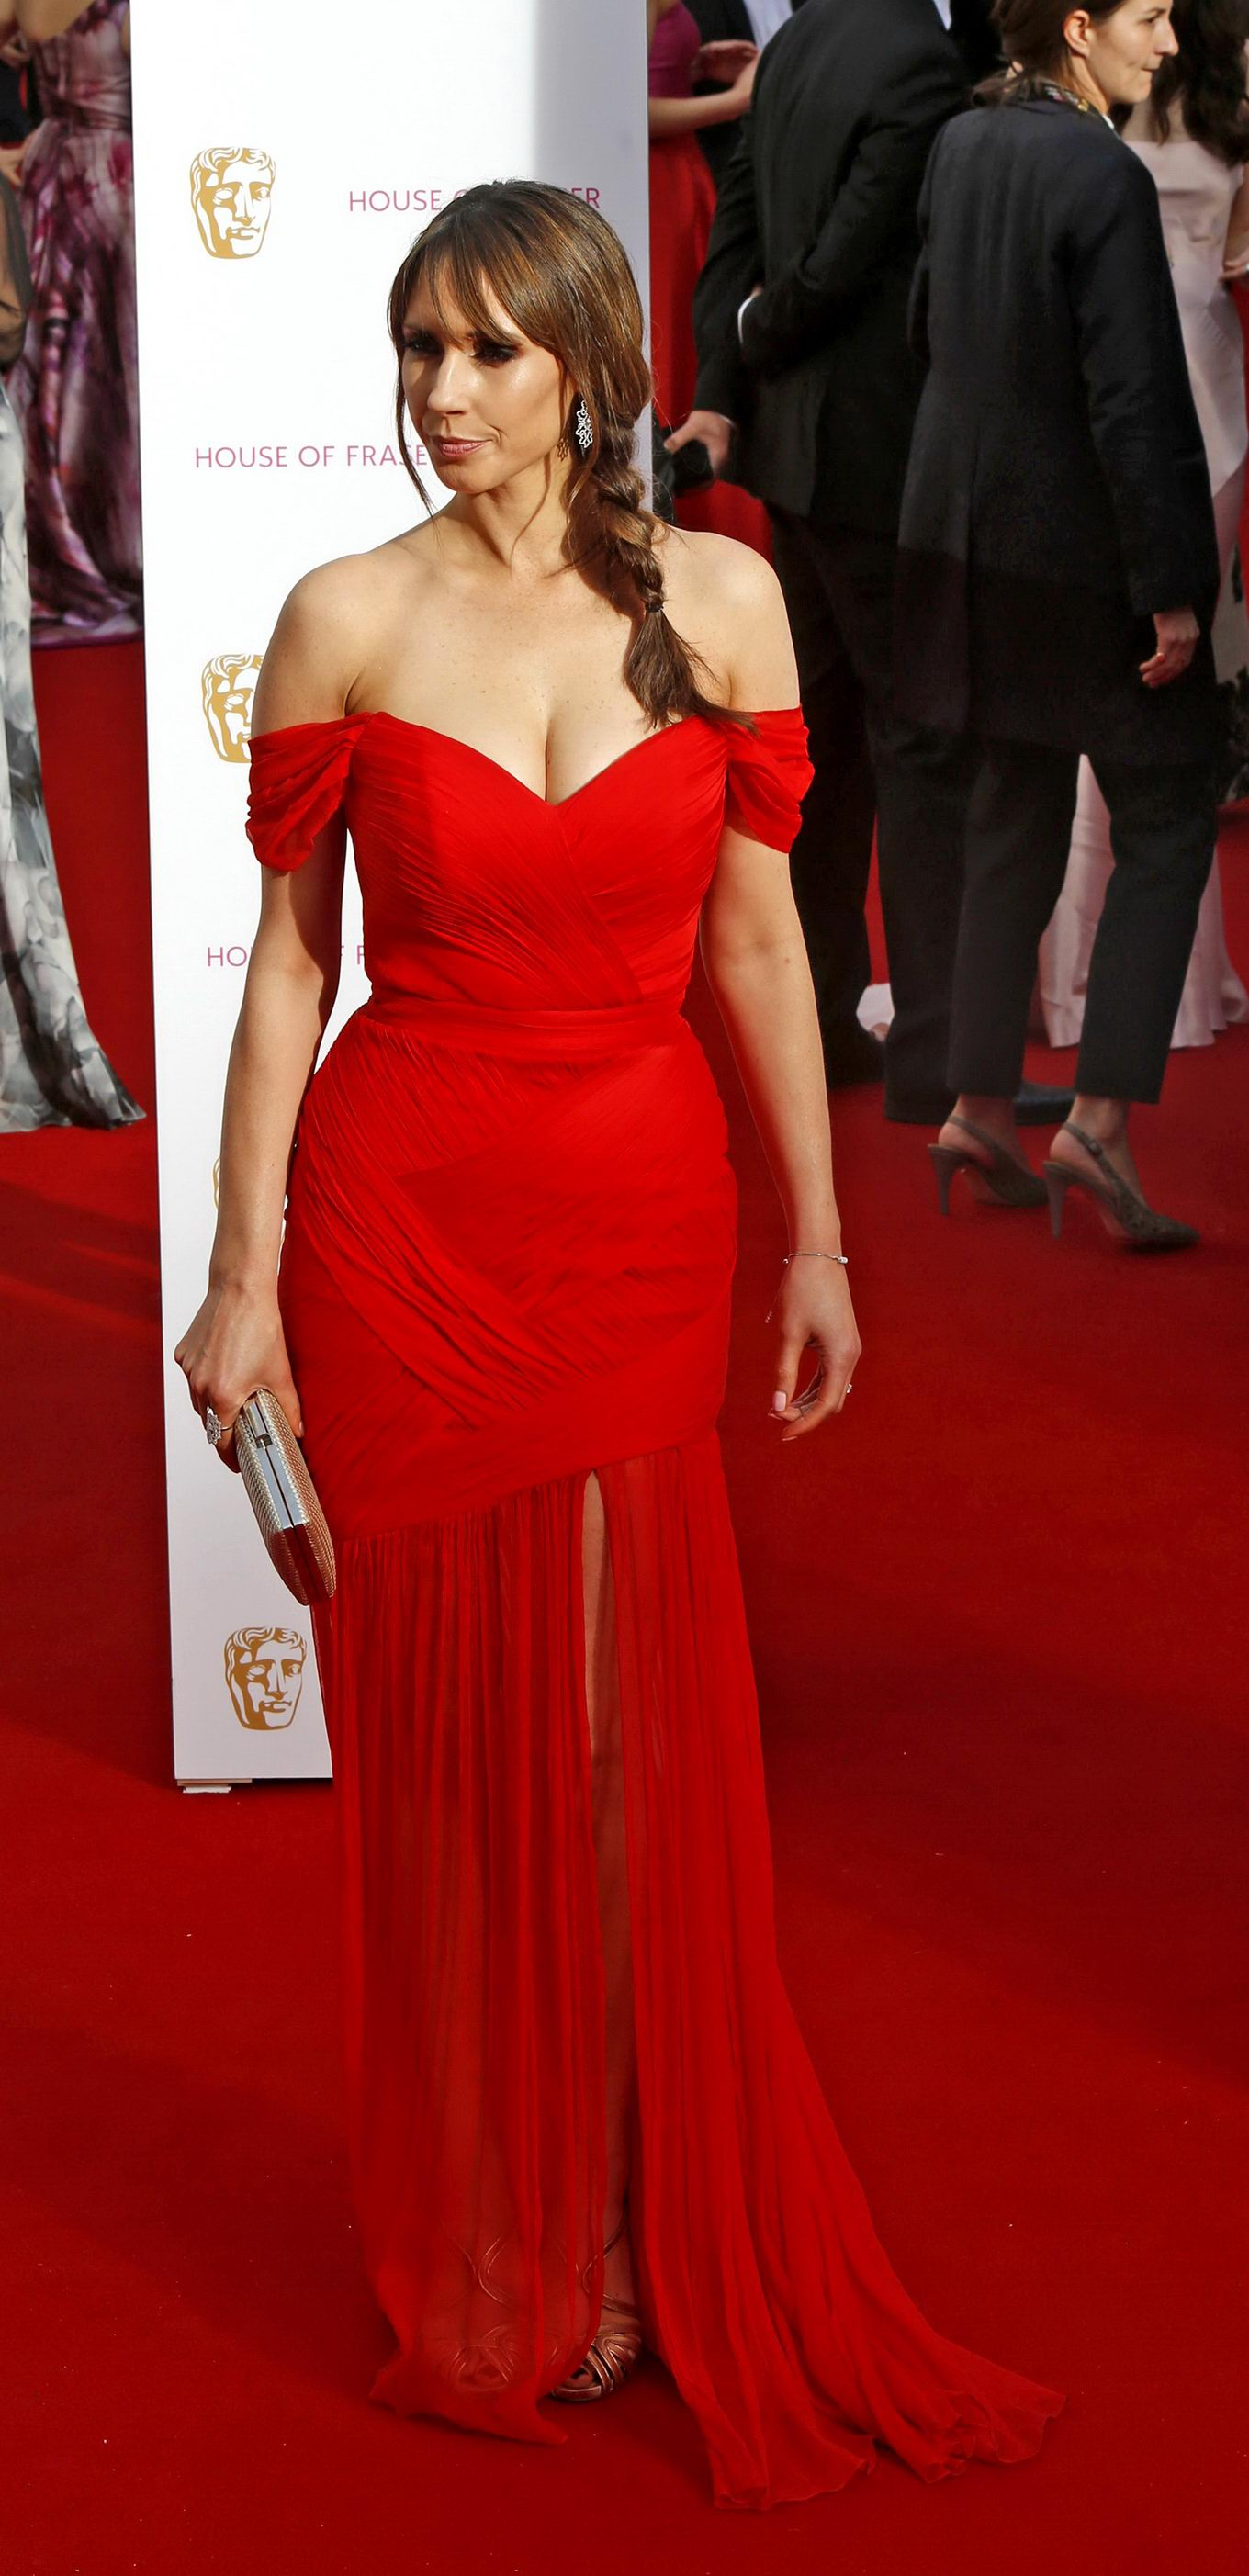 Alex Jones showing huge cleavage at the BAFTA Awards in London: www.celeb-for-free.com/pics/celeb6678/topcelebs.html